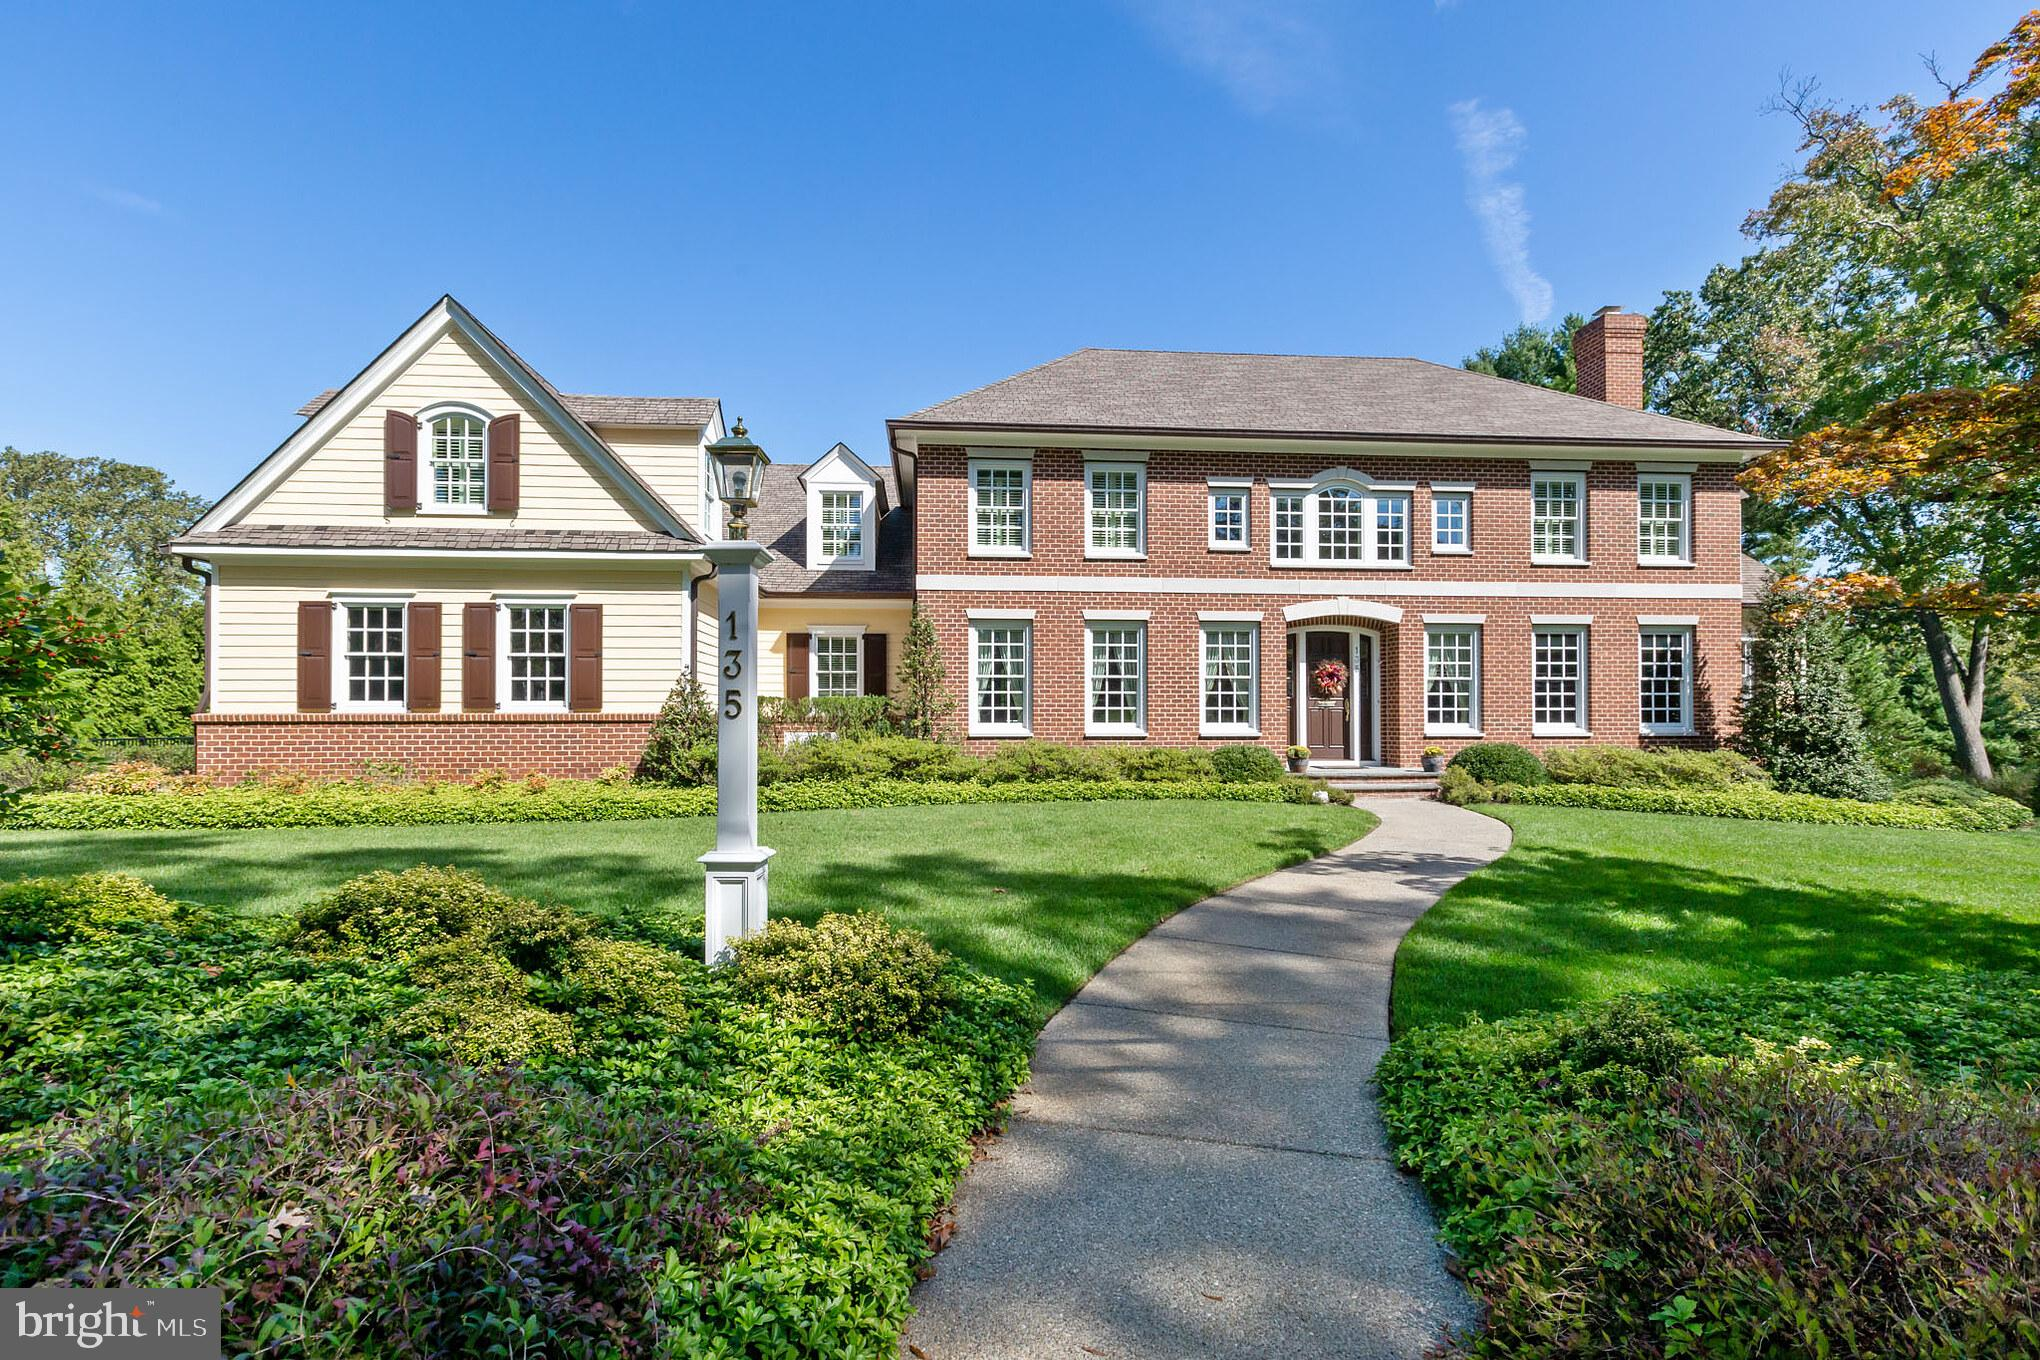 135 WINDING WAY, HADDONFIELD, NJ 08033